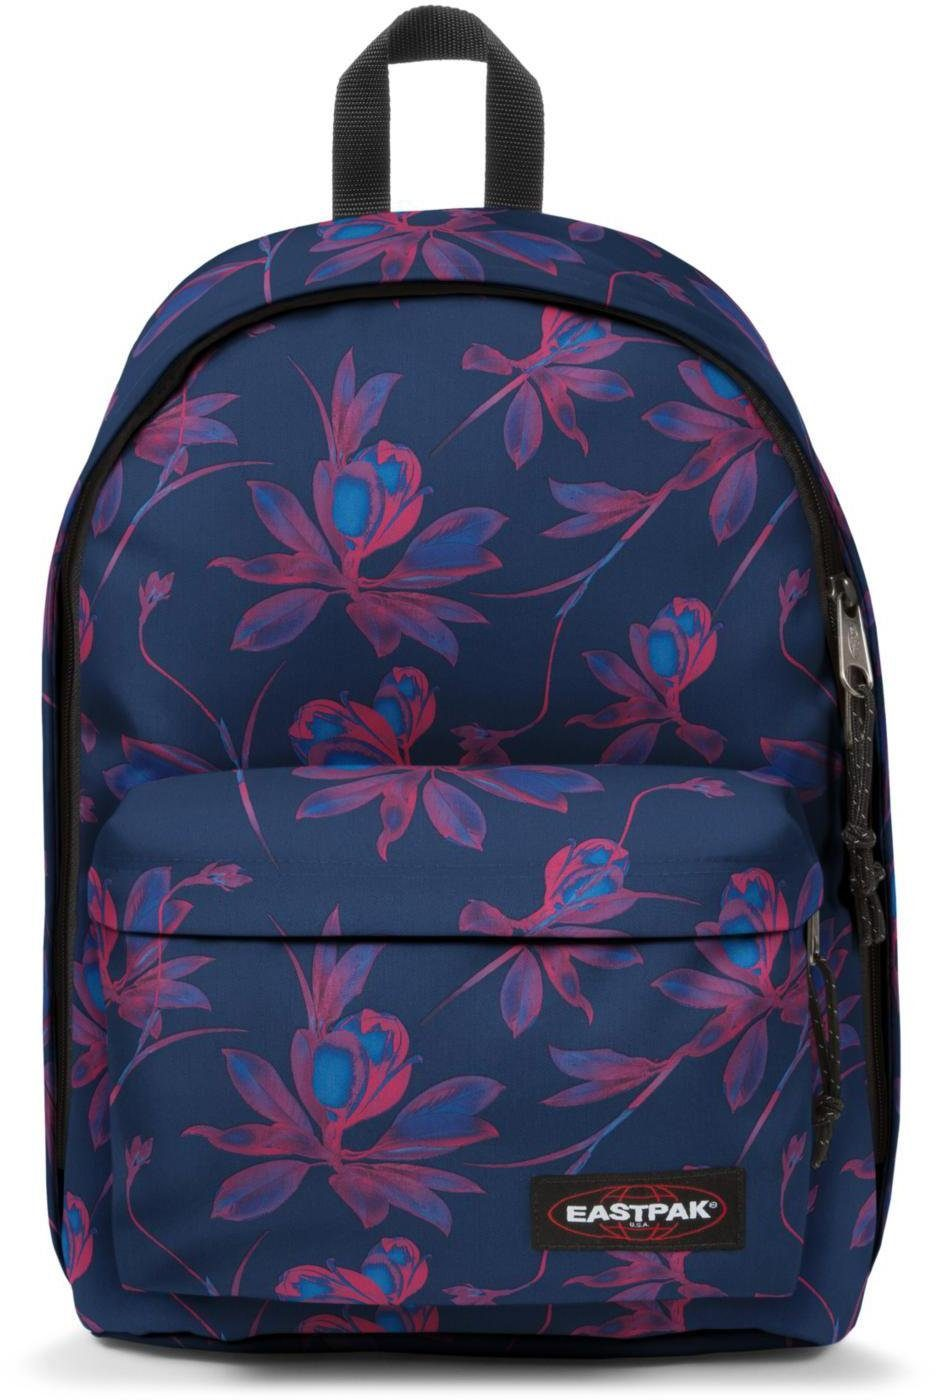 Eastpak Rucksack mit Laptopfach, »OUT OF OFFICE glow pink«